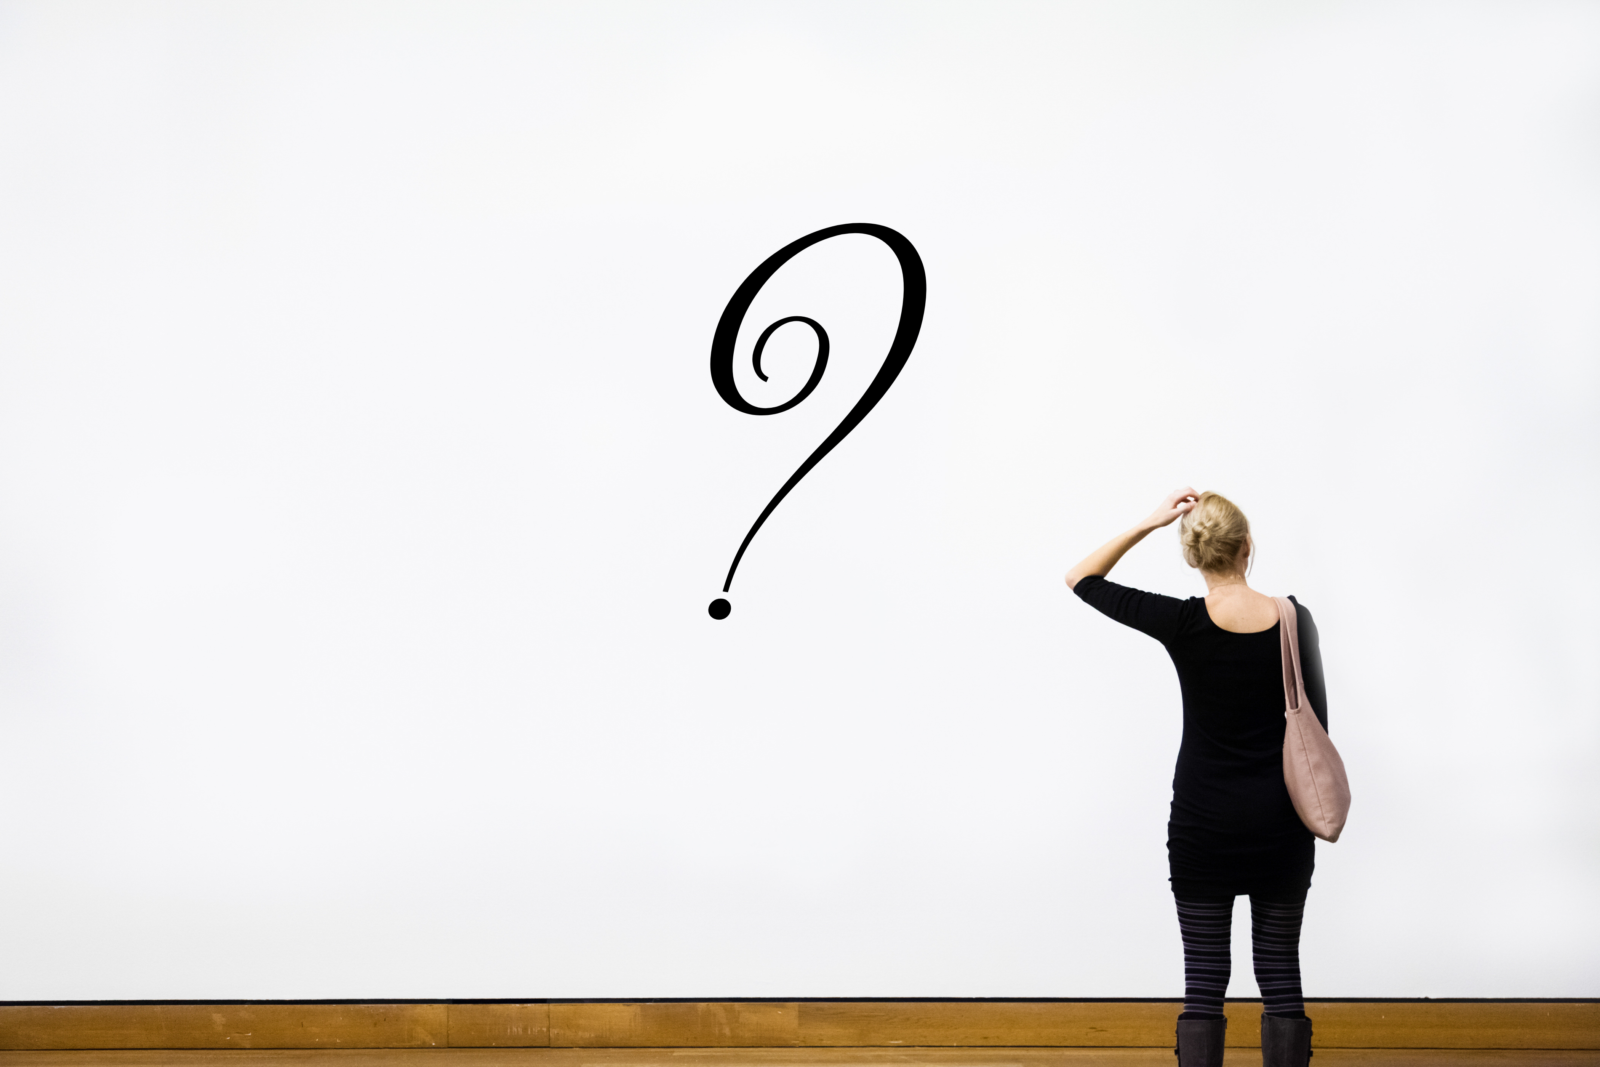 Woman wondering at a question